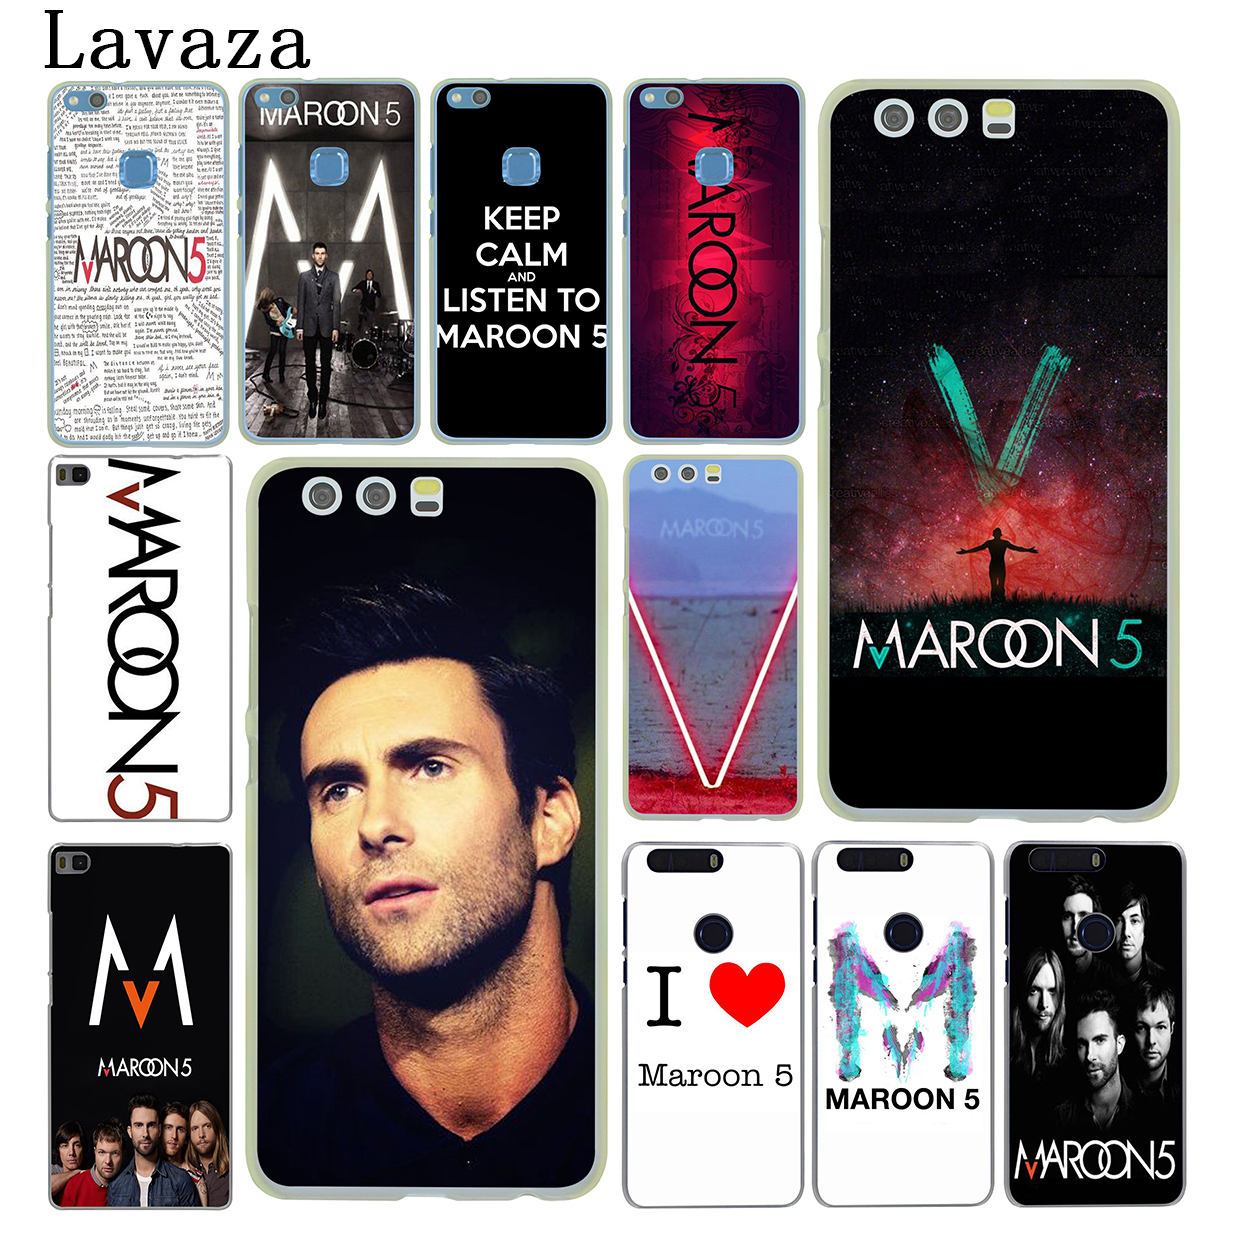 Lavaza maroon 5 Hard Phone Case for Huawei P10 P9 Plus P8 Lite Mini 2015 2016 2017 P7 P6 Mate 10 Lite Pro Cover